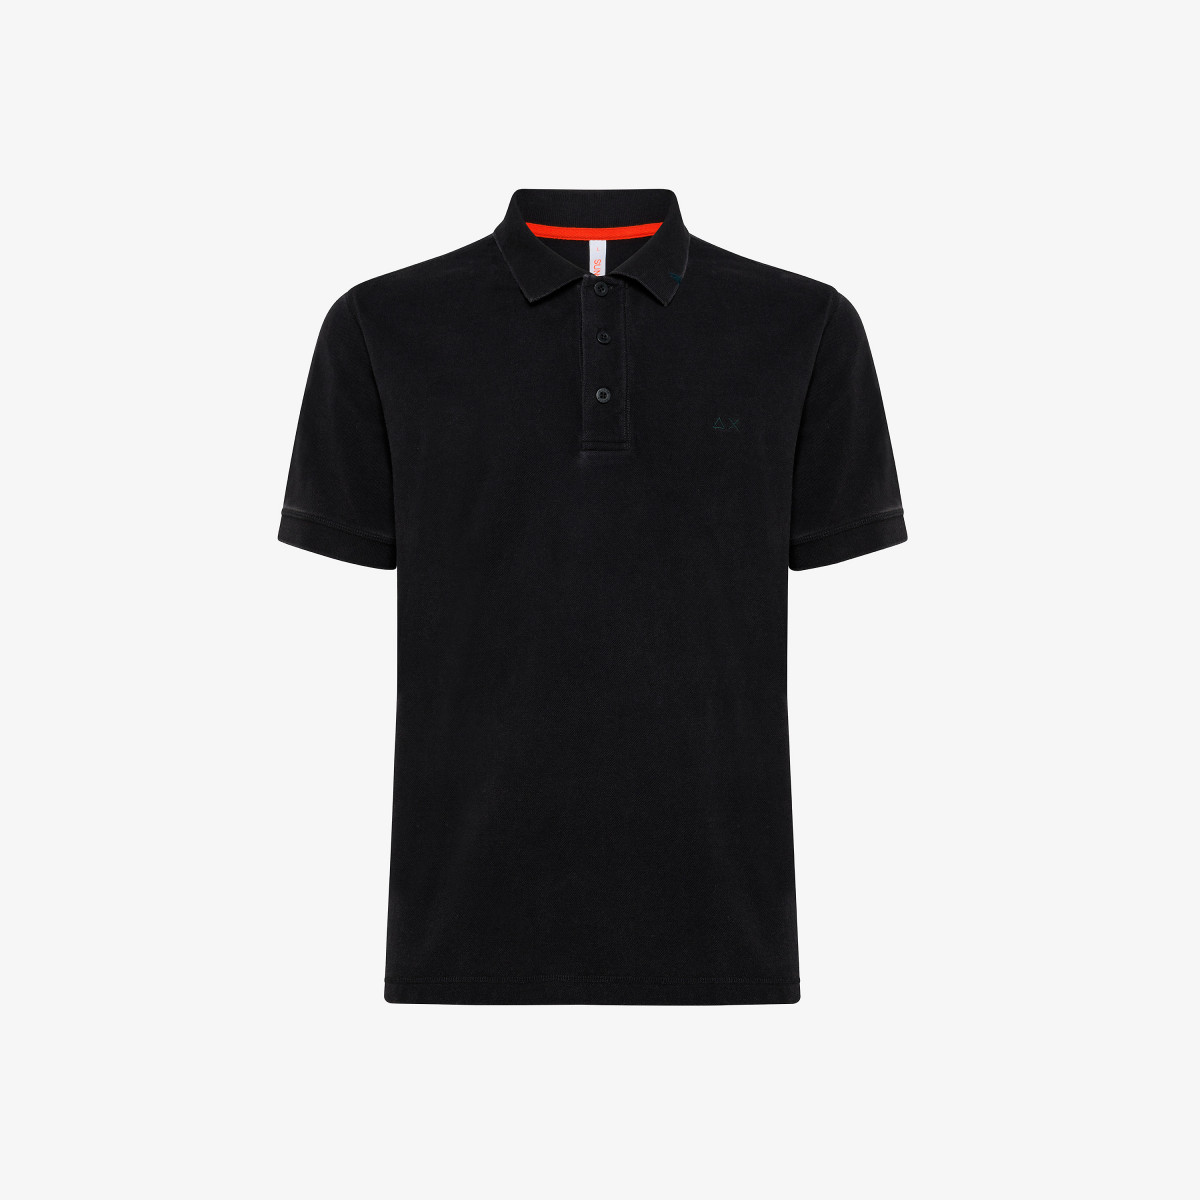 POLO VINTAGE CONTRAST STICHING S/S NERO